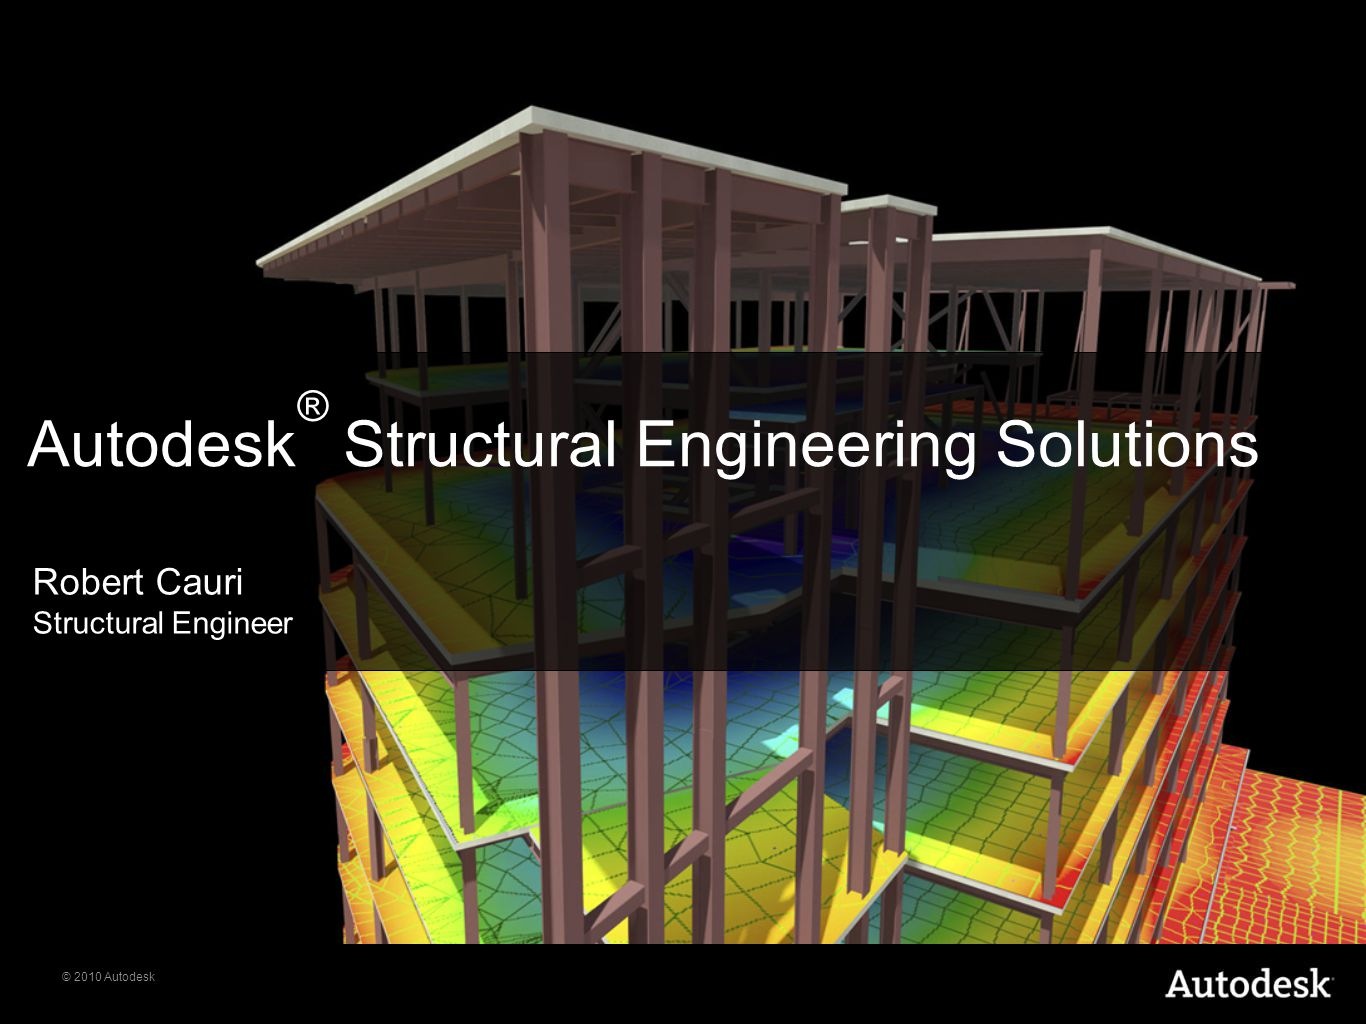 © 2010 Autodesk Autodesk ® Structural Engineering Solutions Robert Cauri Structural Engineer